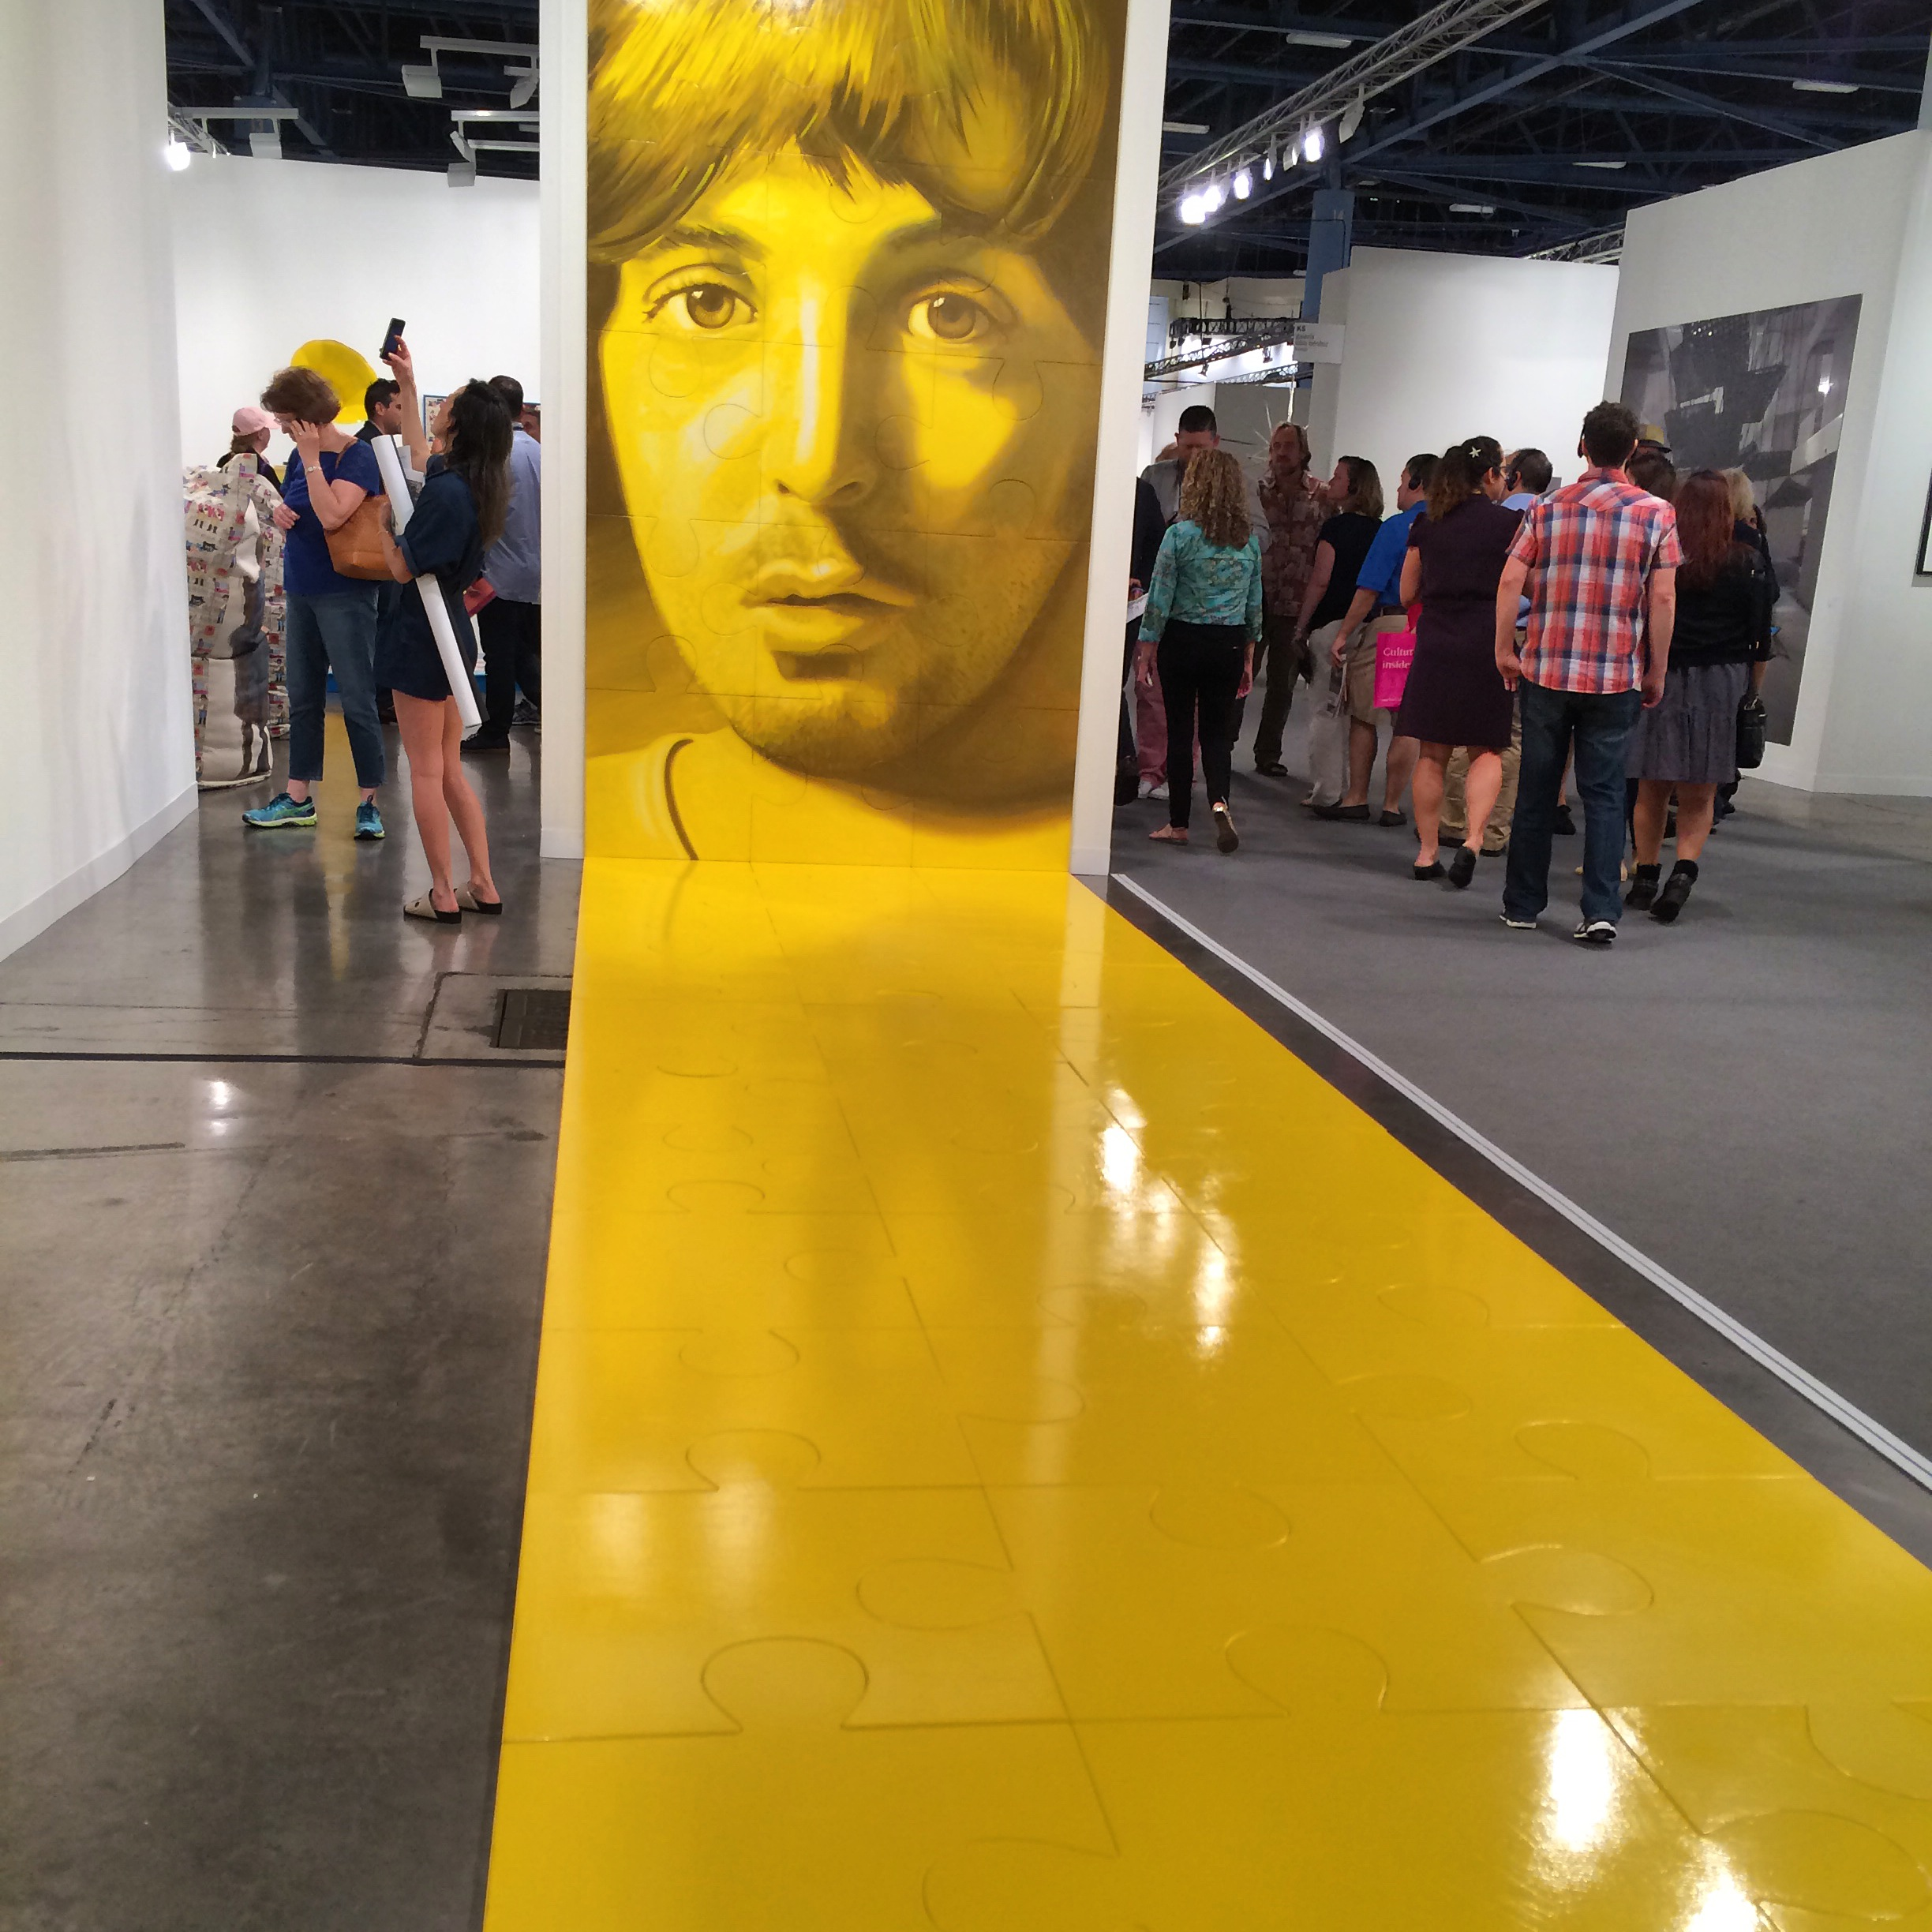 Jack Early's solo presentation at Fergus   McCaffrey (New York and St. Barth's) had us with the giant blown-up portraits of Paul McCartney and John Lennon, facing each other across a floor of bright yellow puzzle pieces. Yes, it was fun, intelligent, and had us all taking snaps.